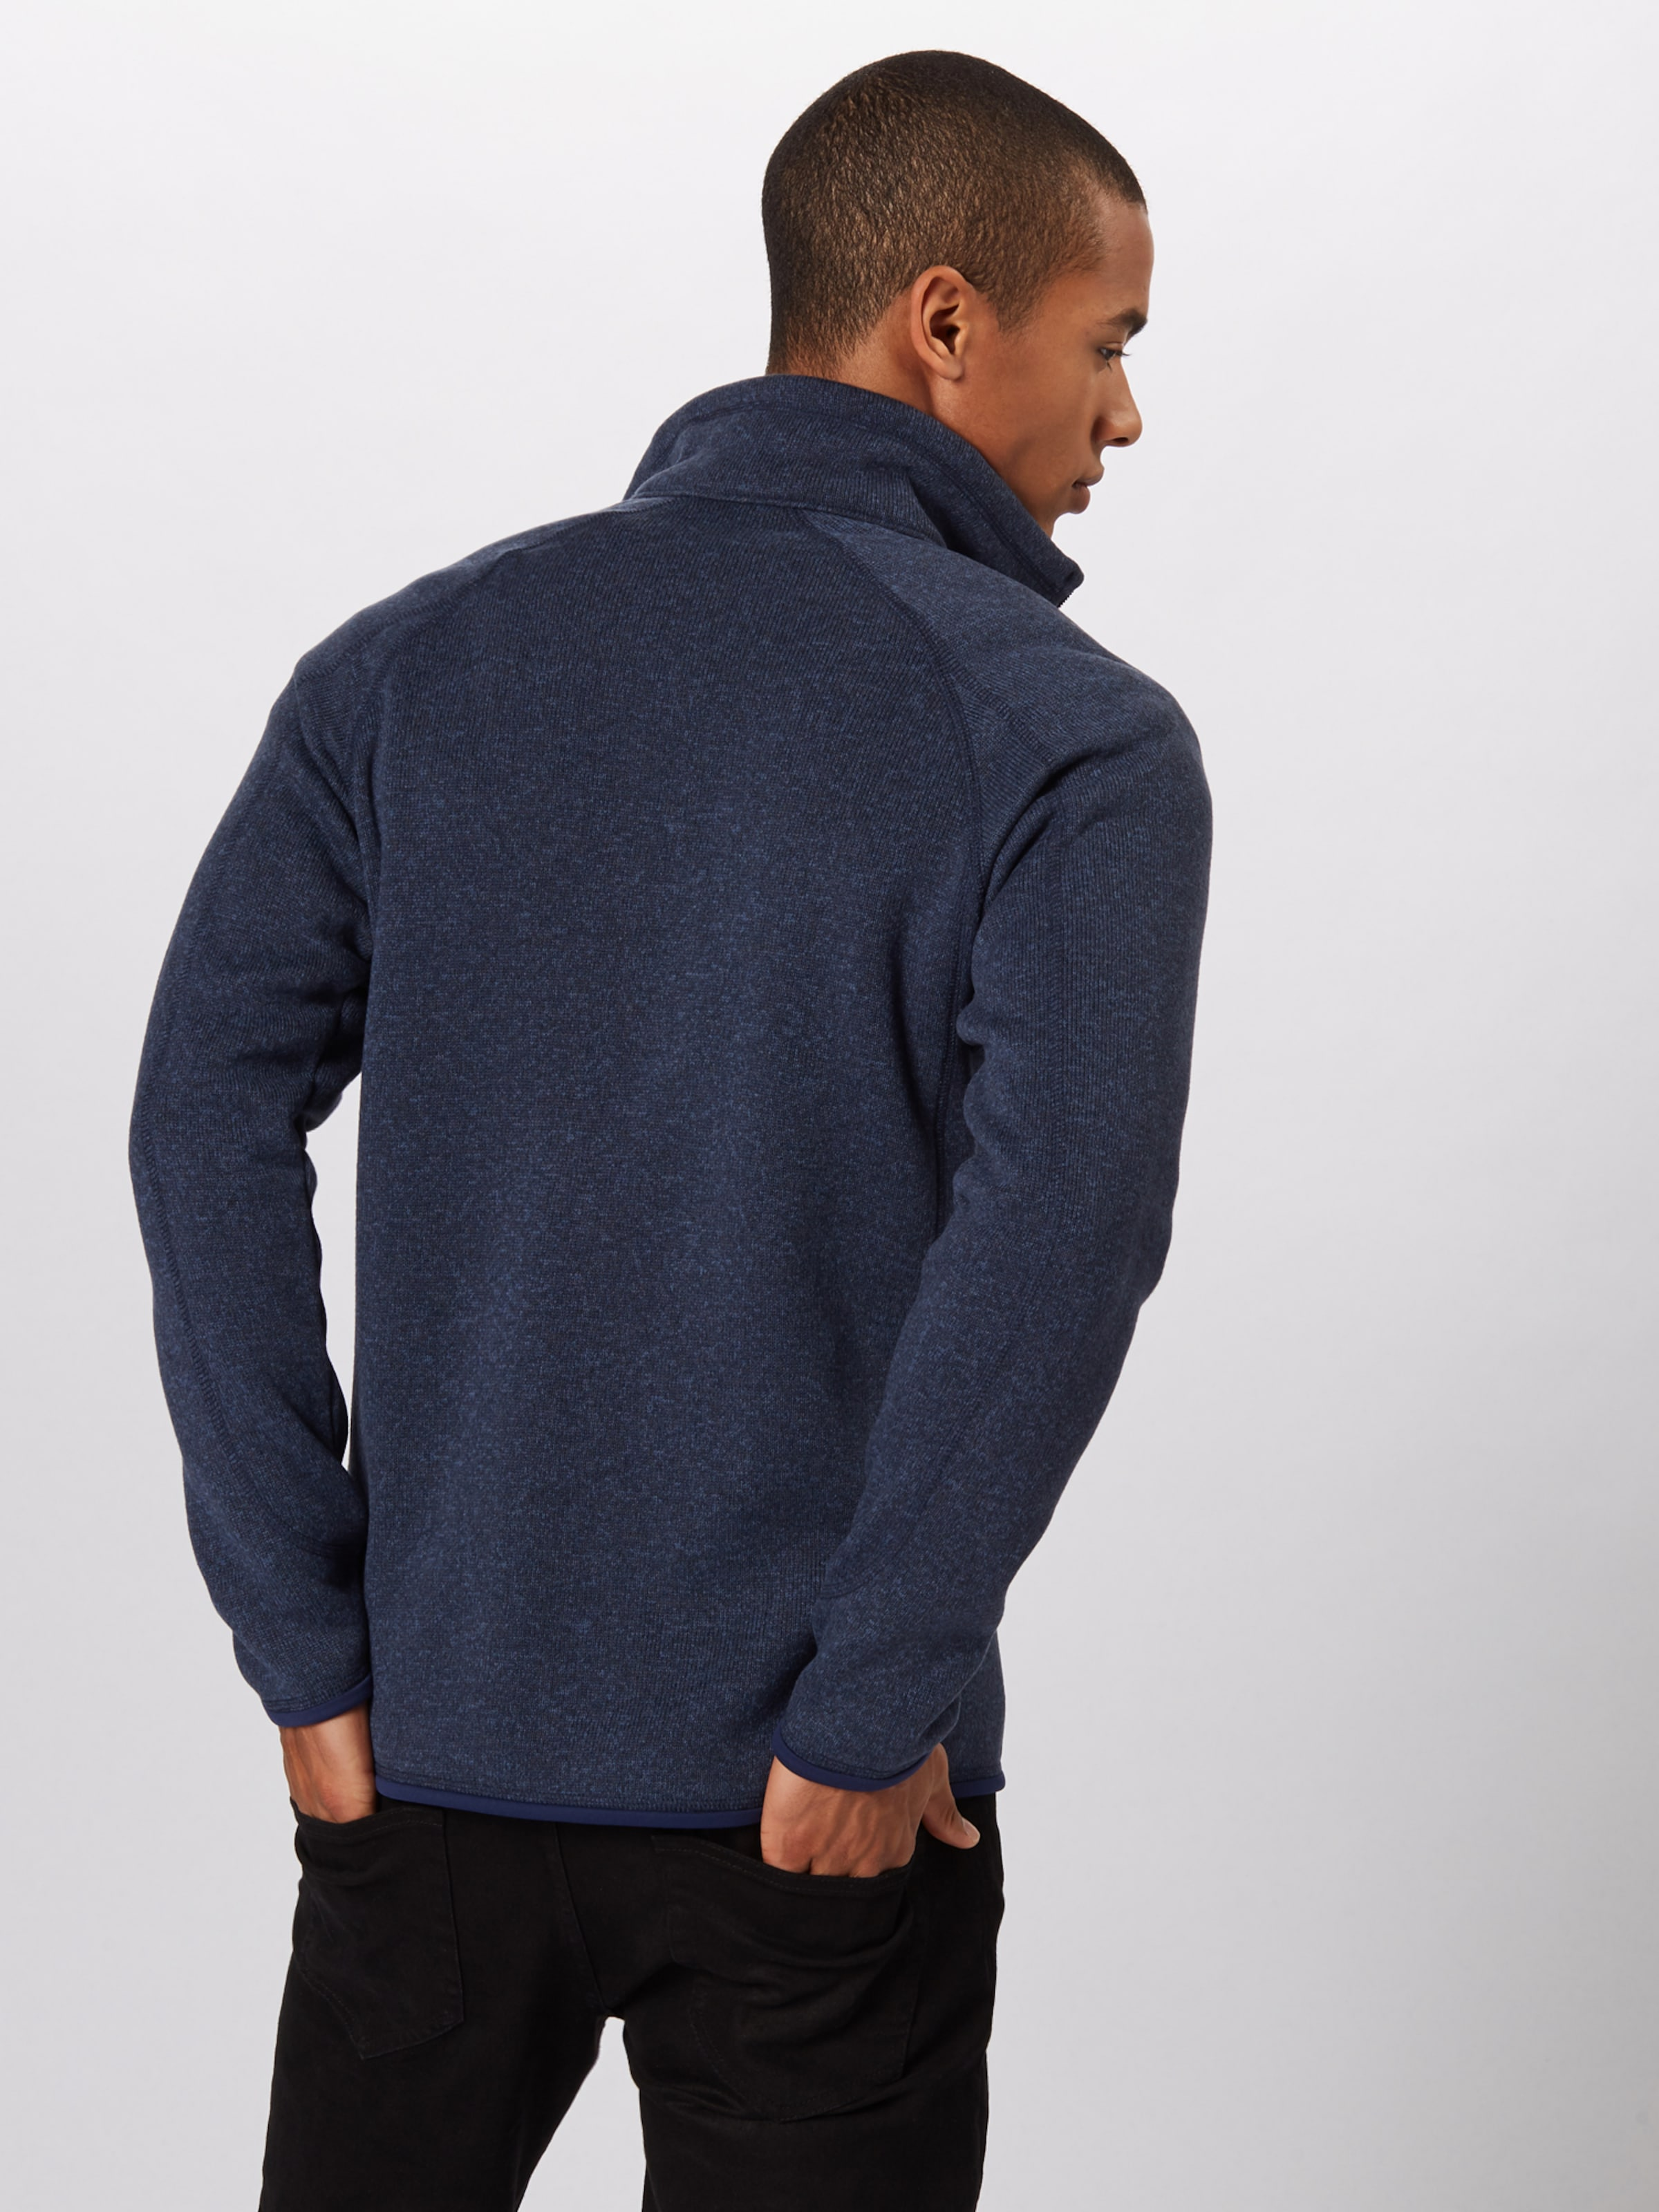 Better 'm's In Patagonia Navy Sweater' Sweatjacke Y7gyvbf6Im